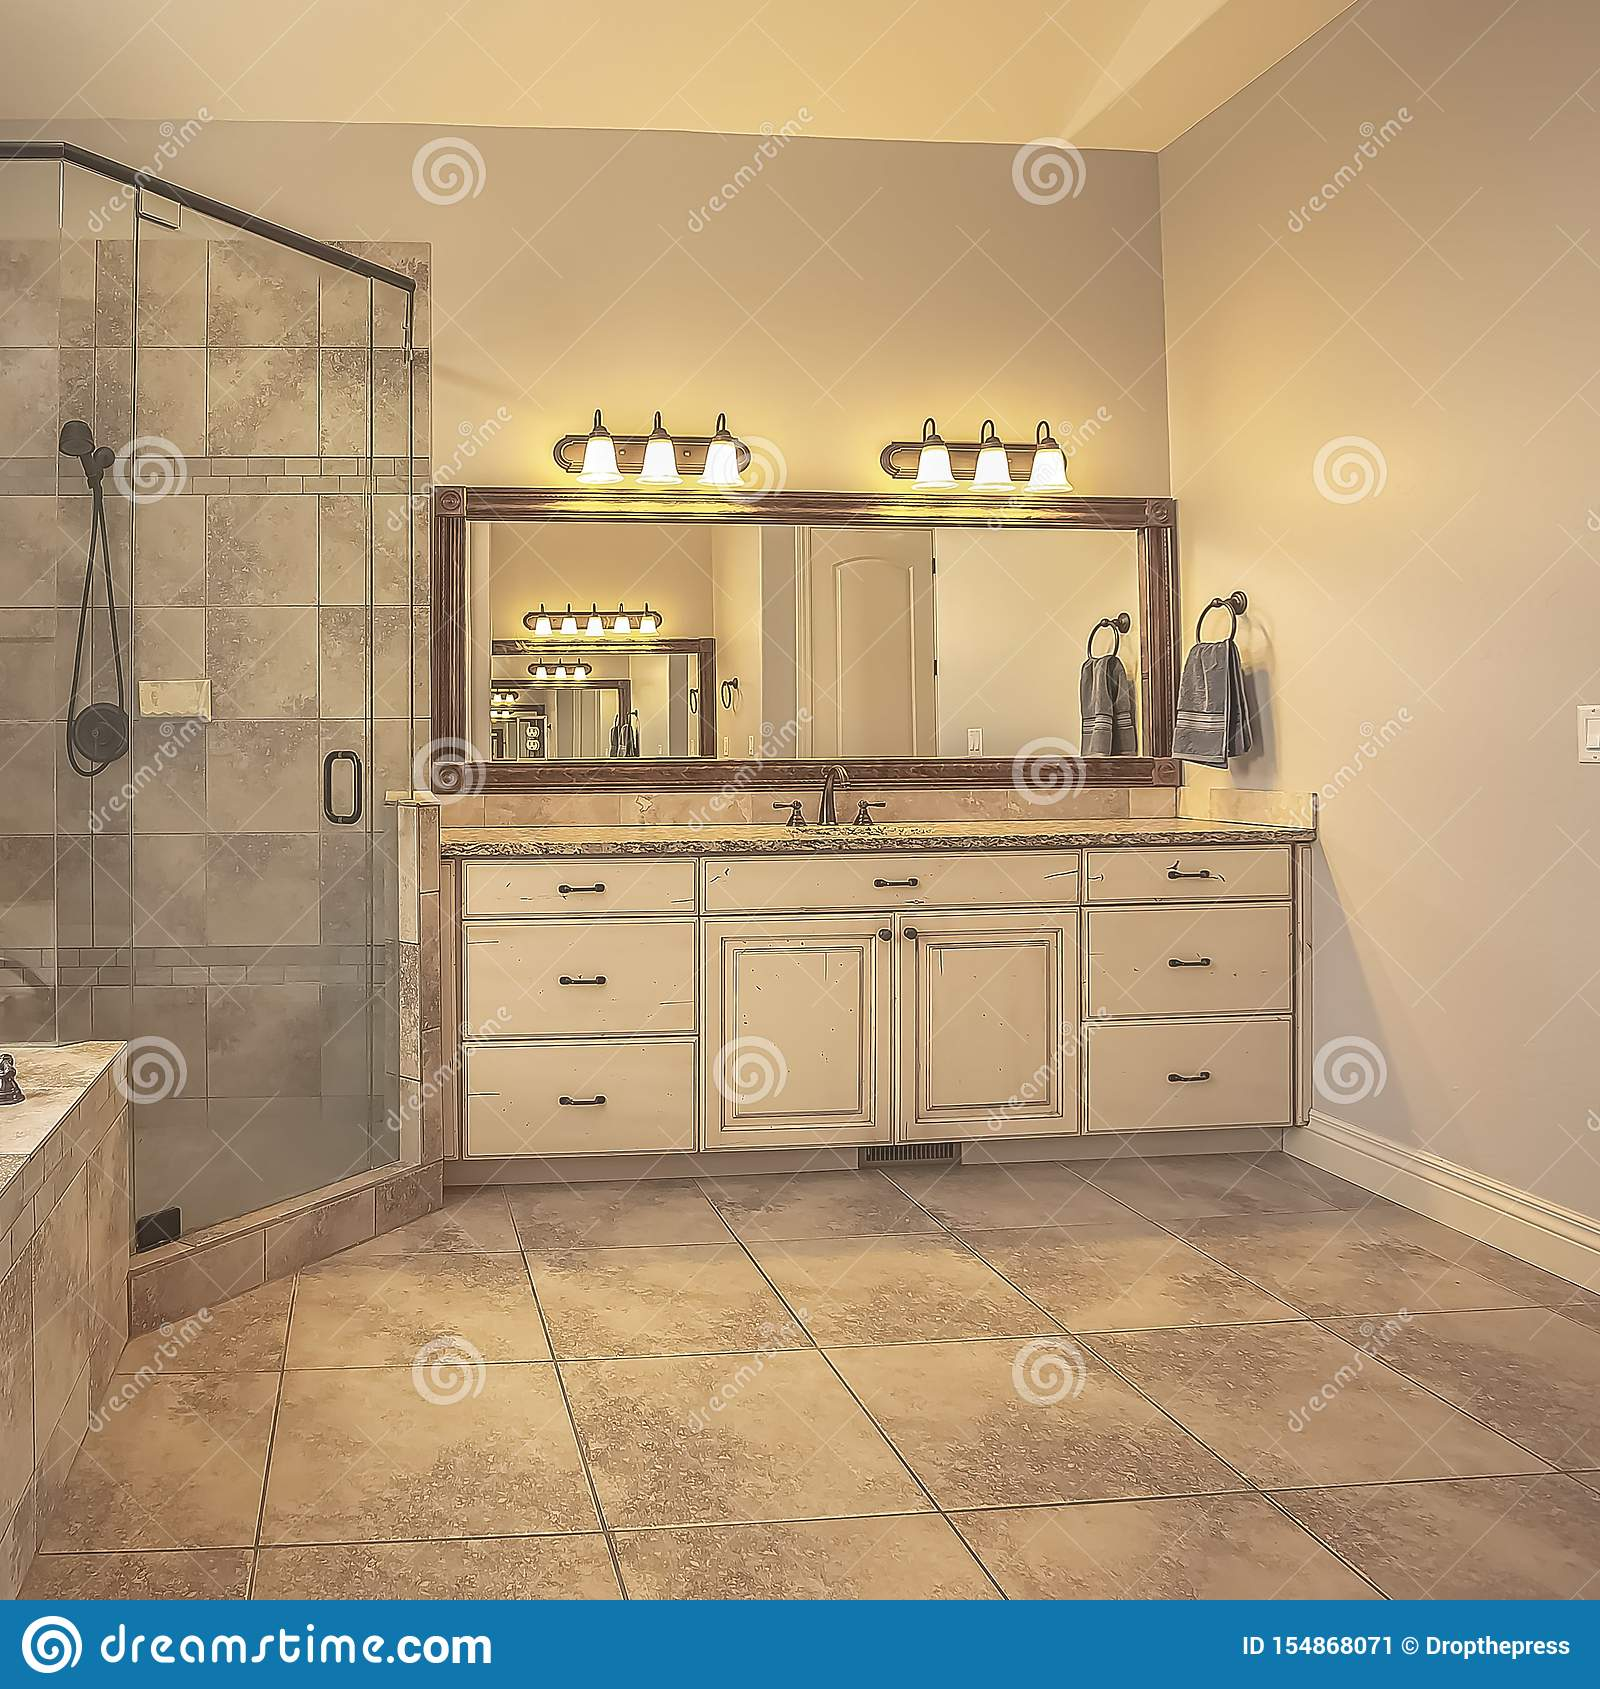 https www dreamstime com square shower stall oval bathtub front arched window curtain vanity unit rectangular mirror lights can image154868071